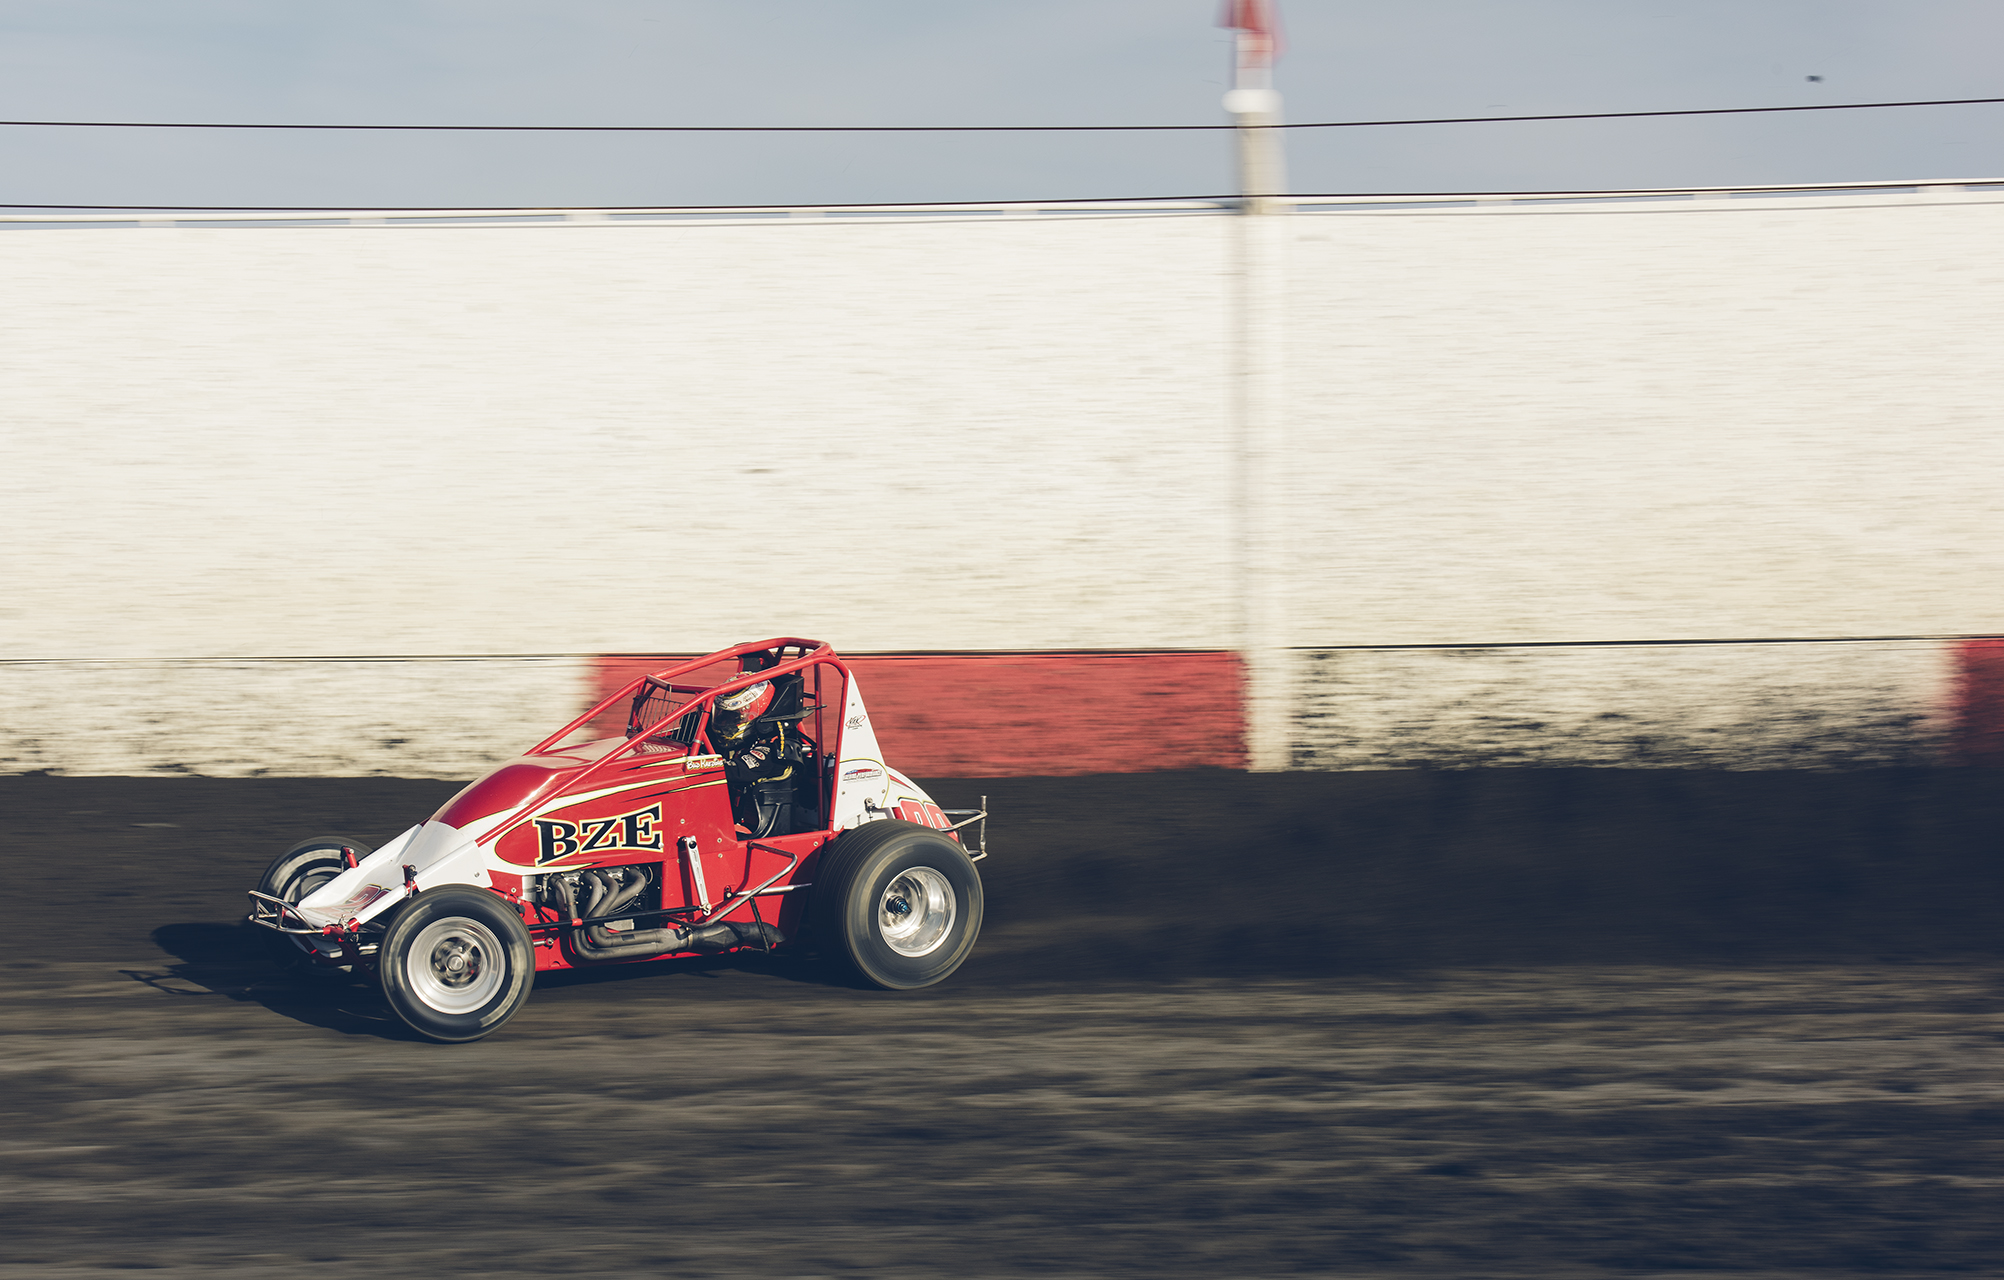 Bud driving the Bowman/BZE USAC 410 non-wing sprinter at Tulare, 2015.